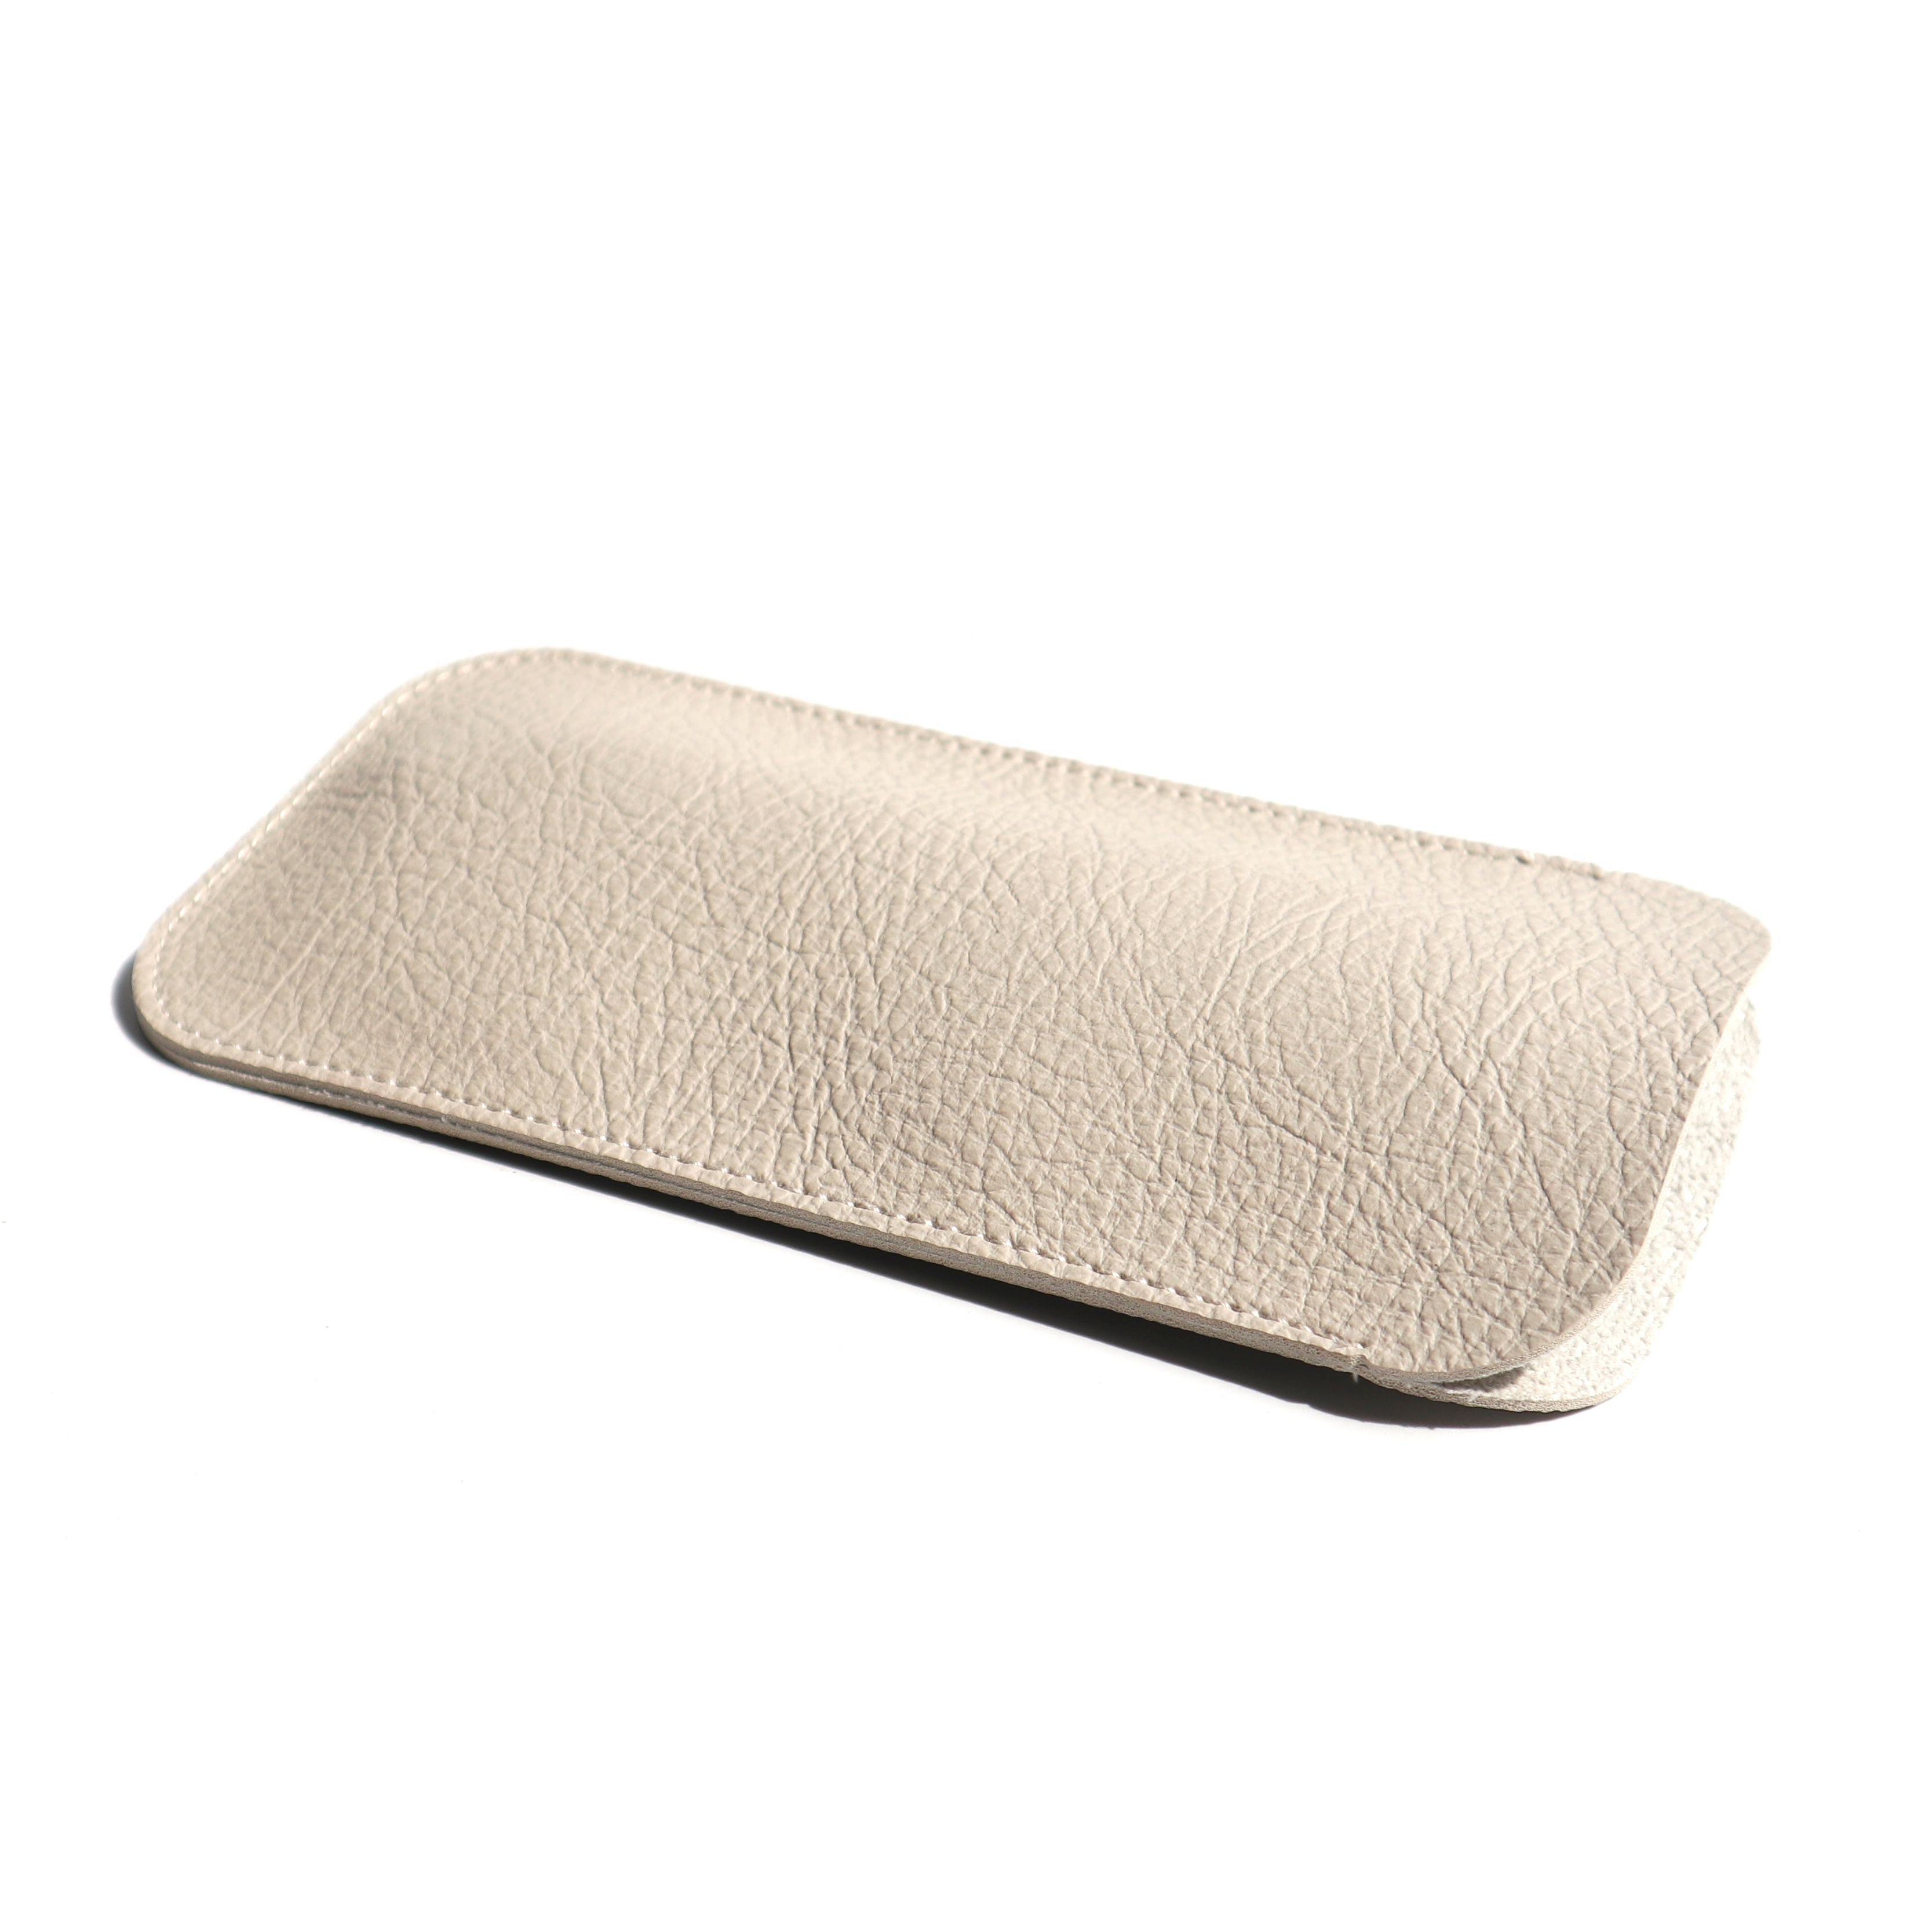 Glasses Pouch Leather Thick PU Sunglasses Case Pouch Wholesale Custom Leather Pouch for Sunglasses Packing Leather Package